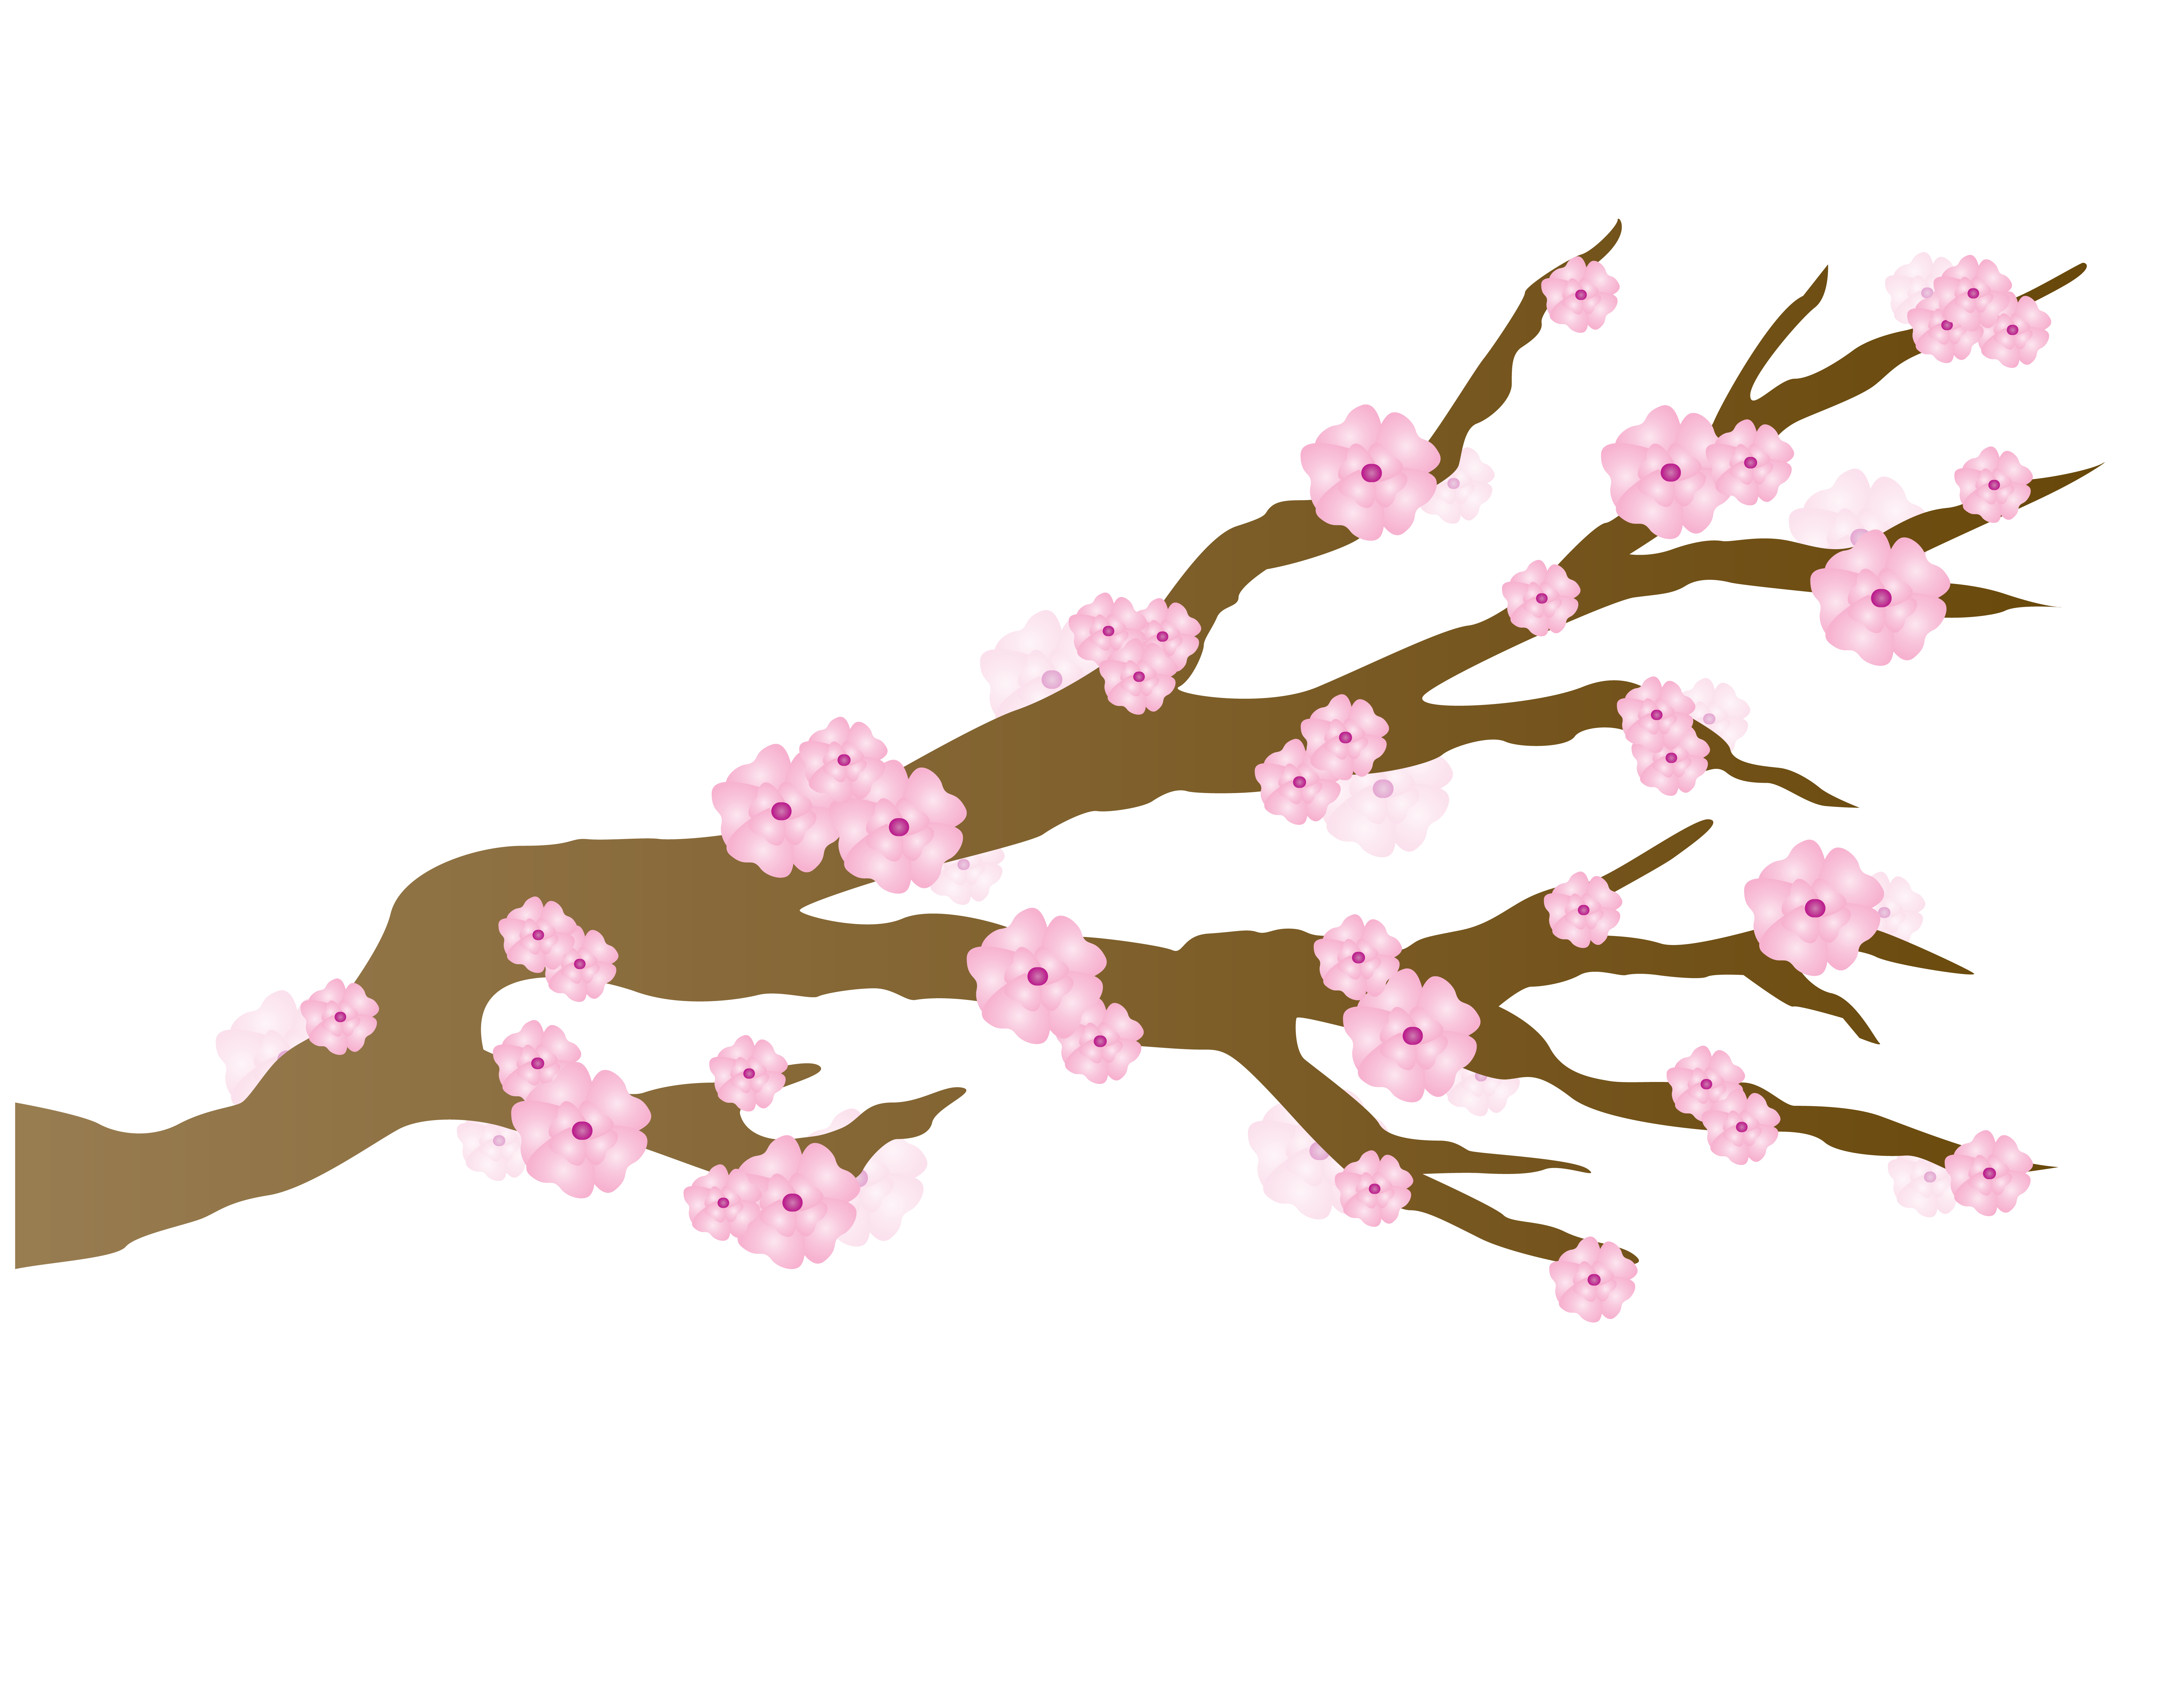 Pink cherry blossoms japanese draft free image graphic stock